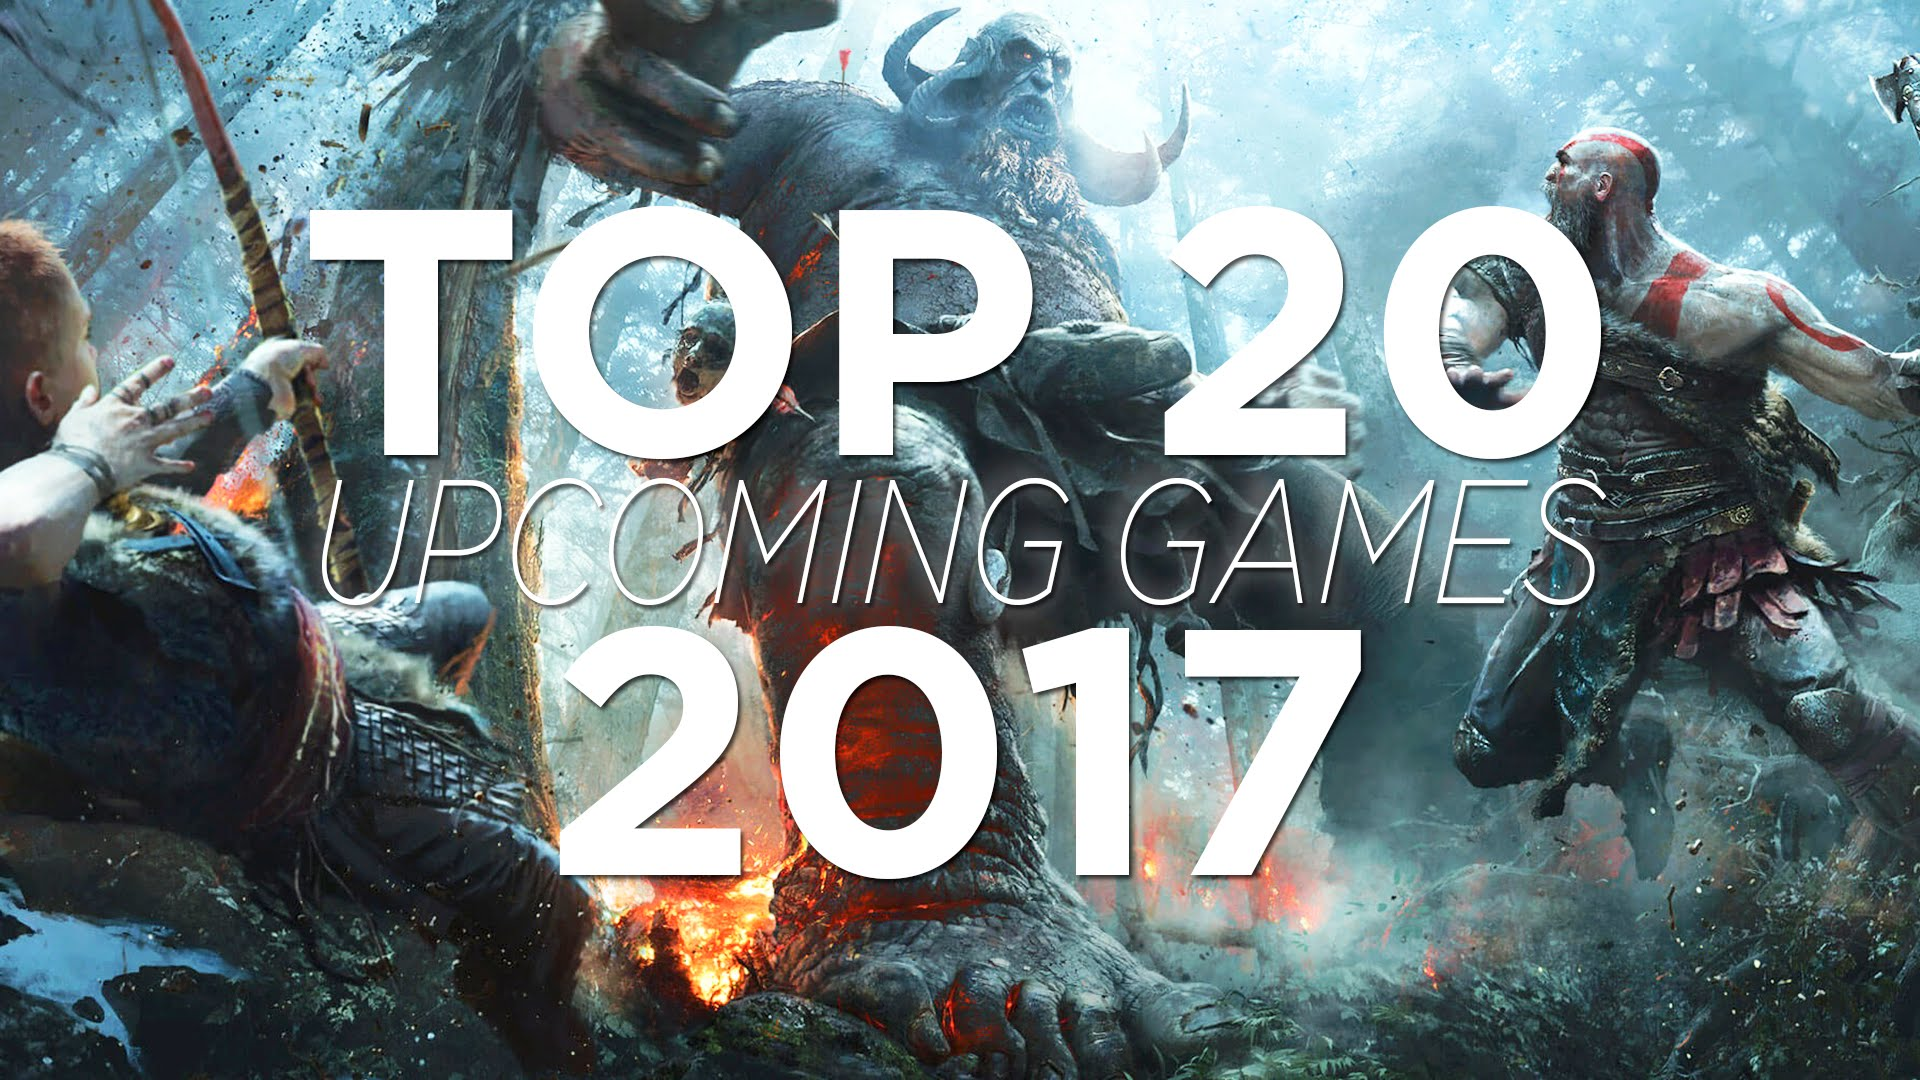 Games that will be released this year